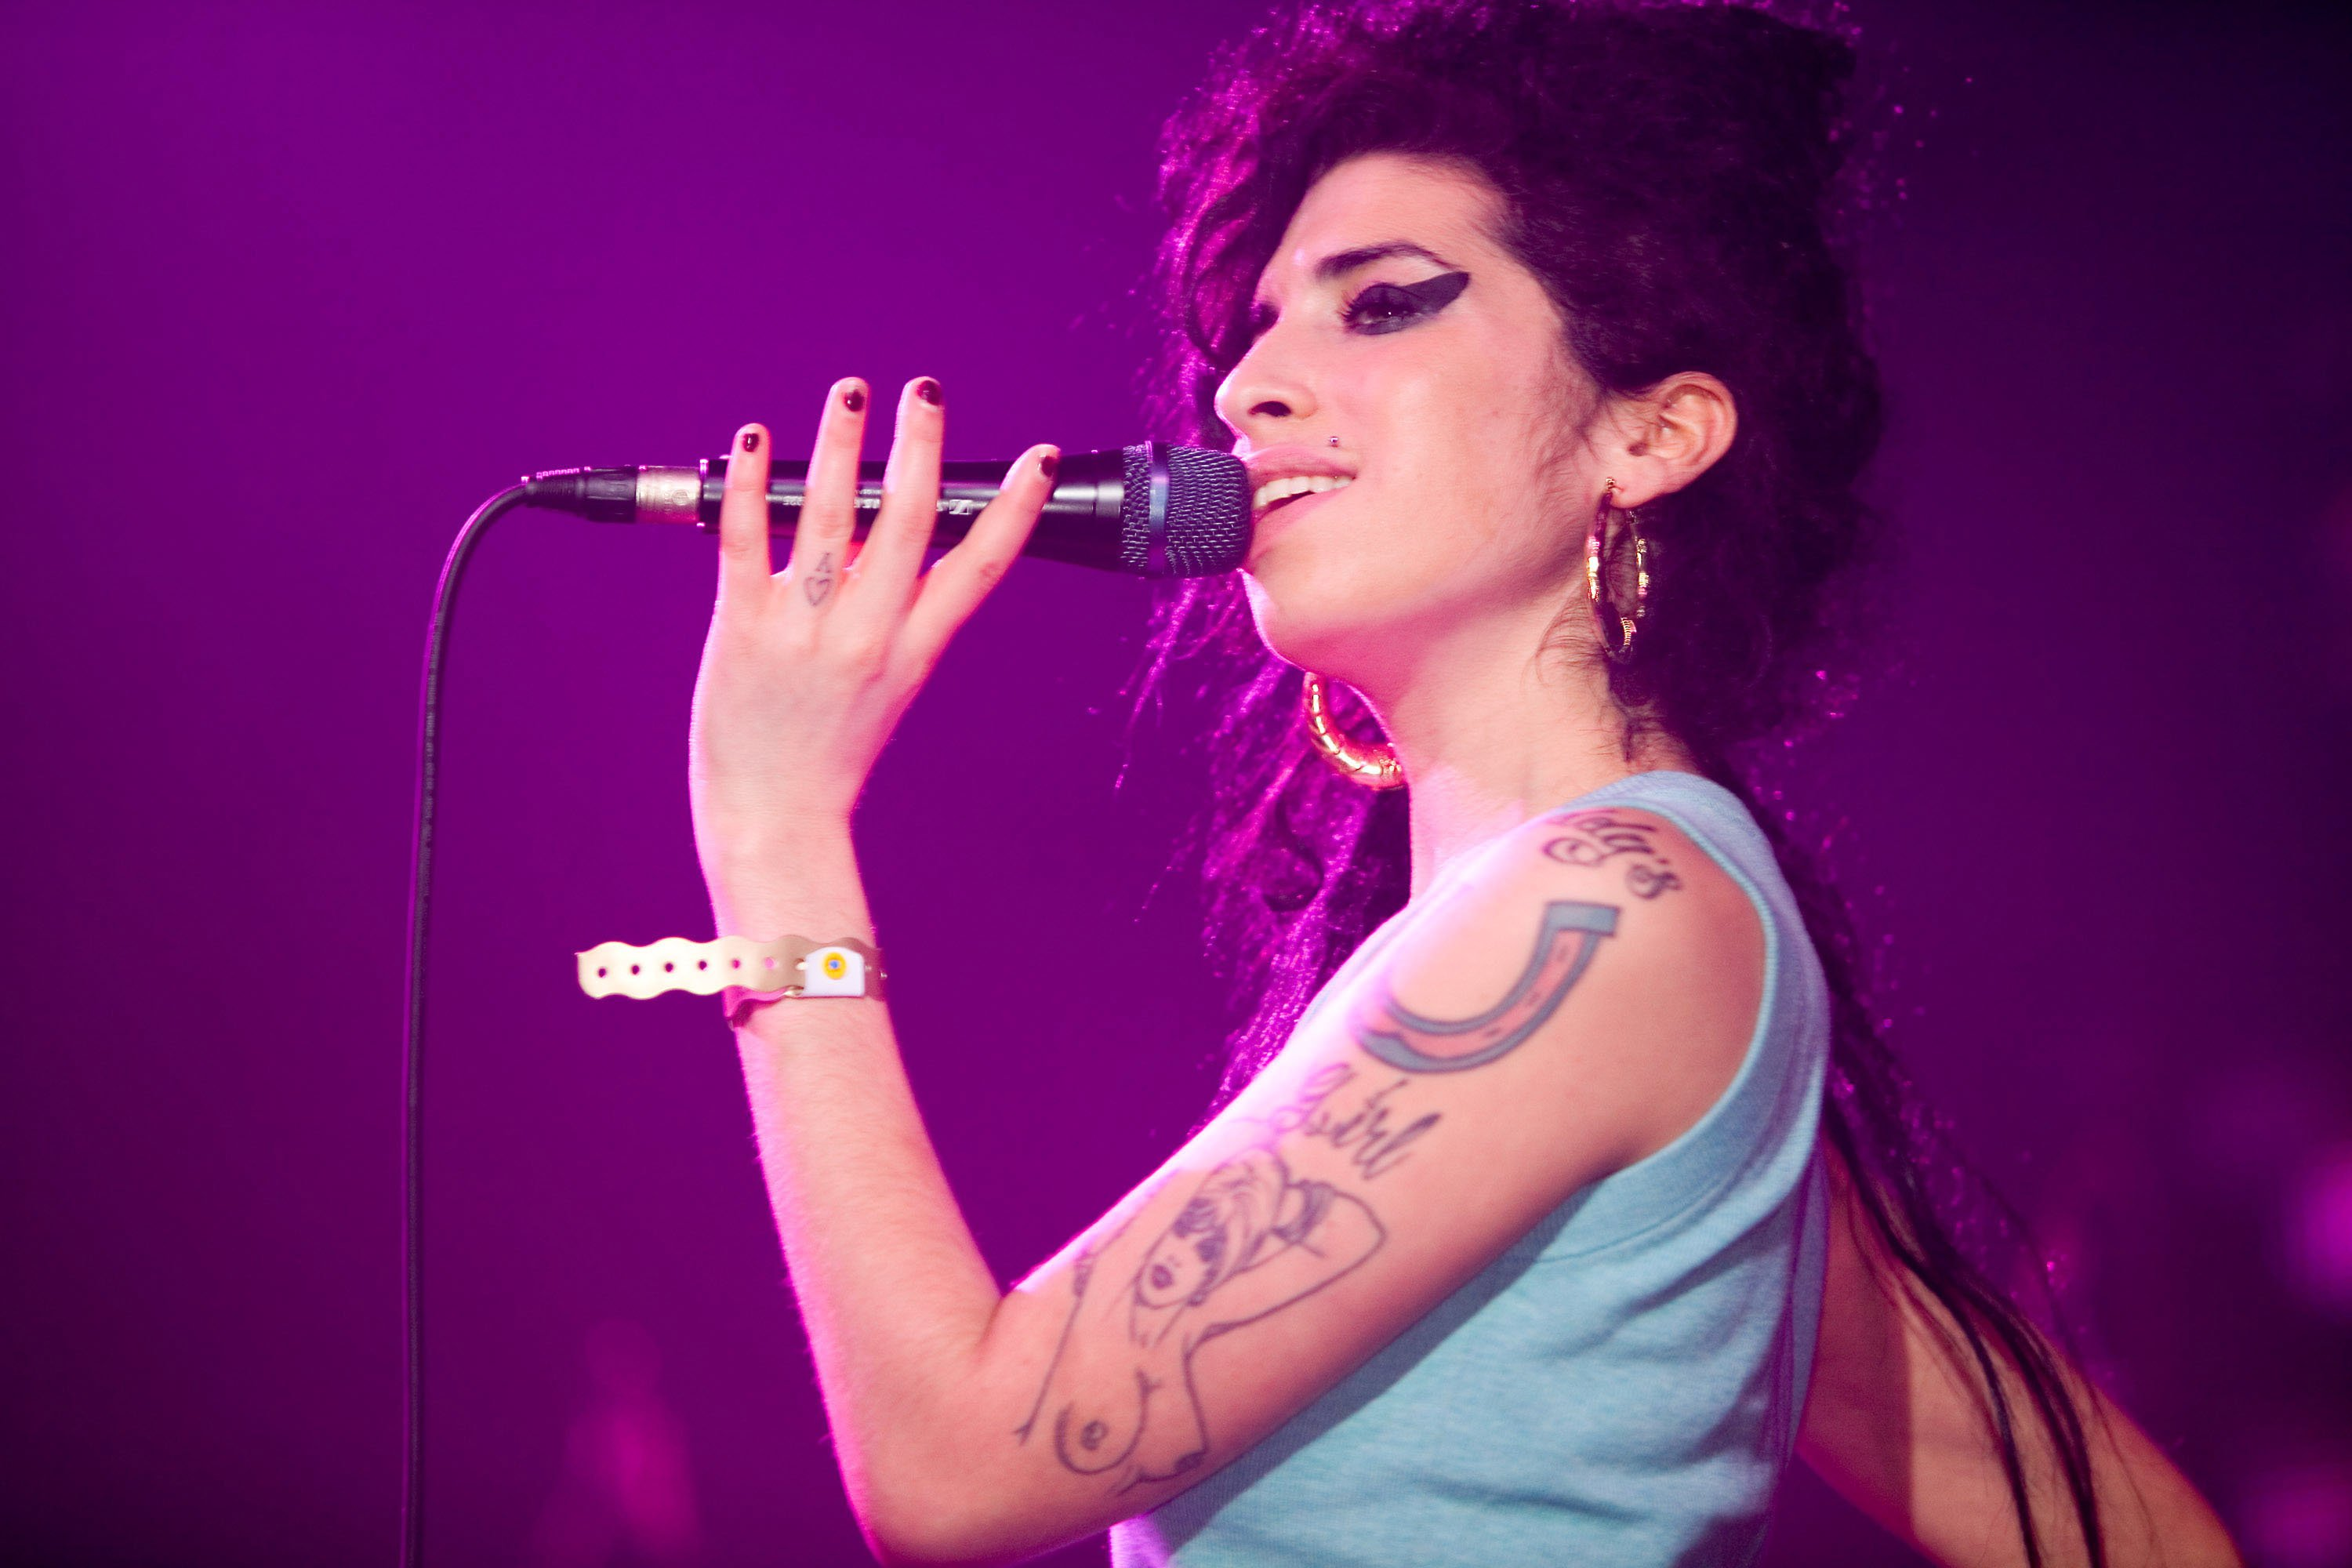 Amy Winehouse during AOL'S Winter Warmer gig - November 29, 2006 at Forum in Kentish Town in London, Great Britain. | Source: Getty Images